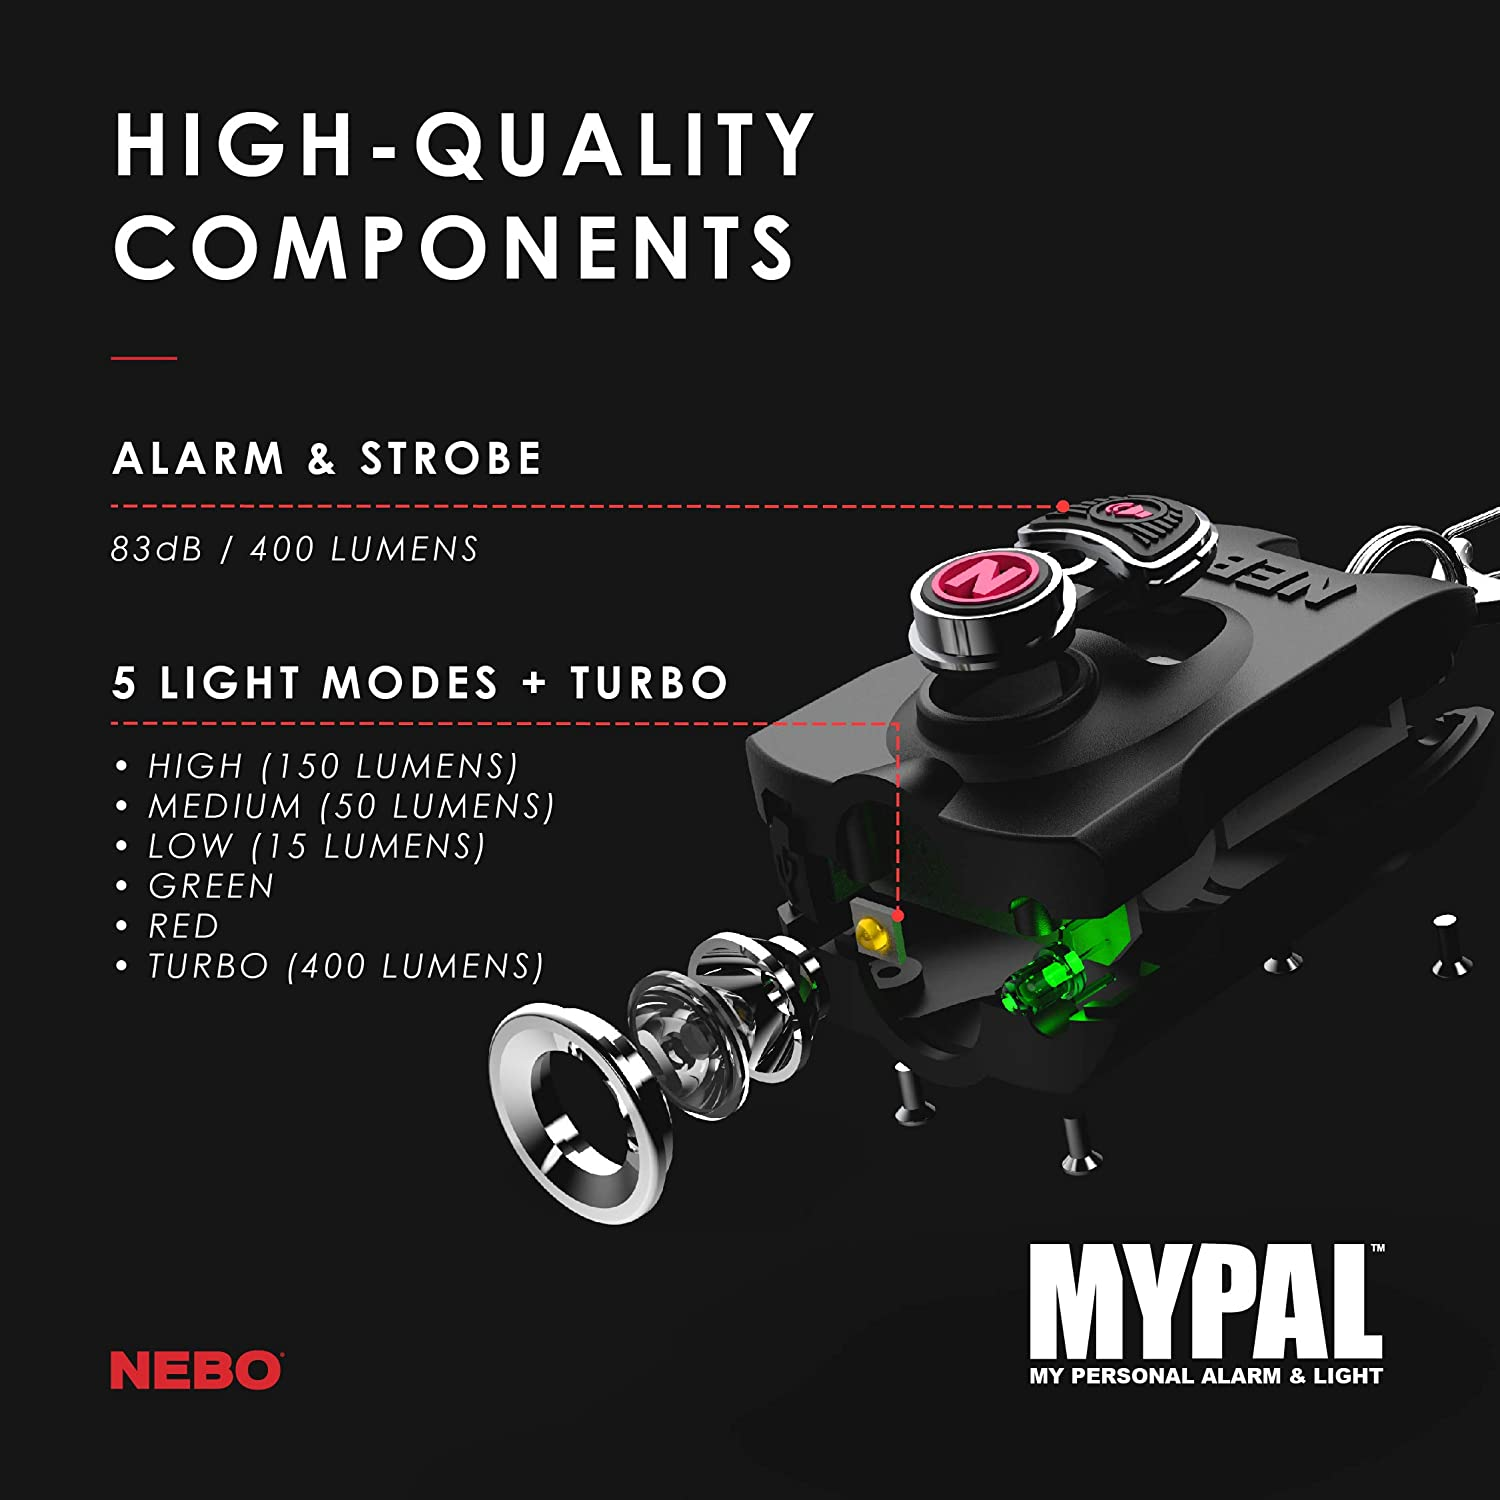 400 Lumen Key Ring Flash Light and 83dB Emergency Alarm; 6 Unique Light Modes Including Alarm and Strobe Mode; Rechargeable; Water and Impact Resistant NEBO MyPal Personal Alarm Flashlight 6909PNK